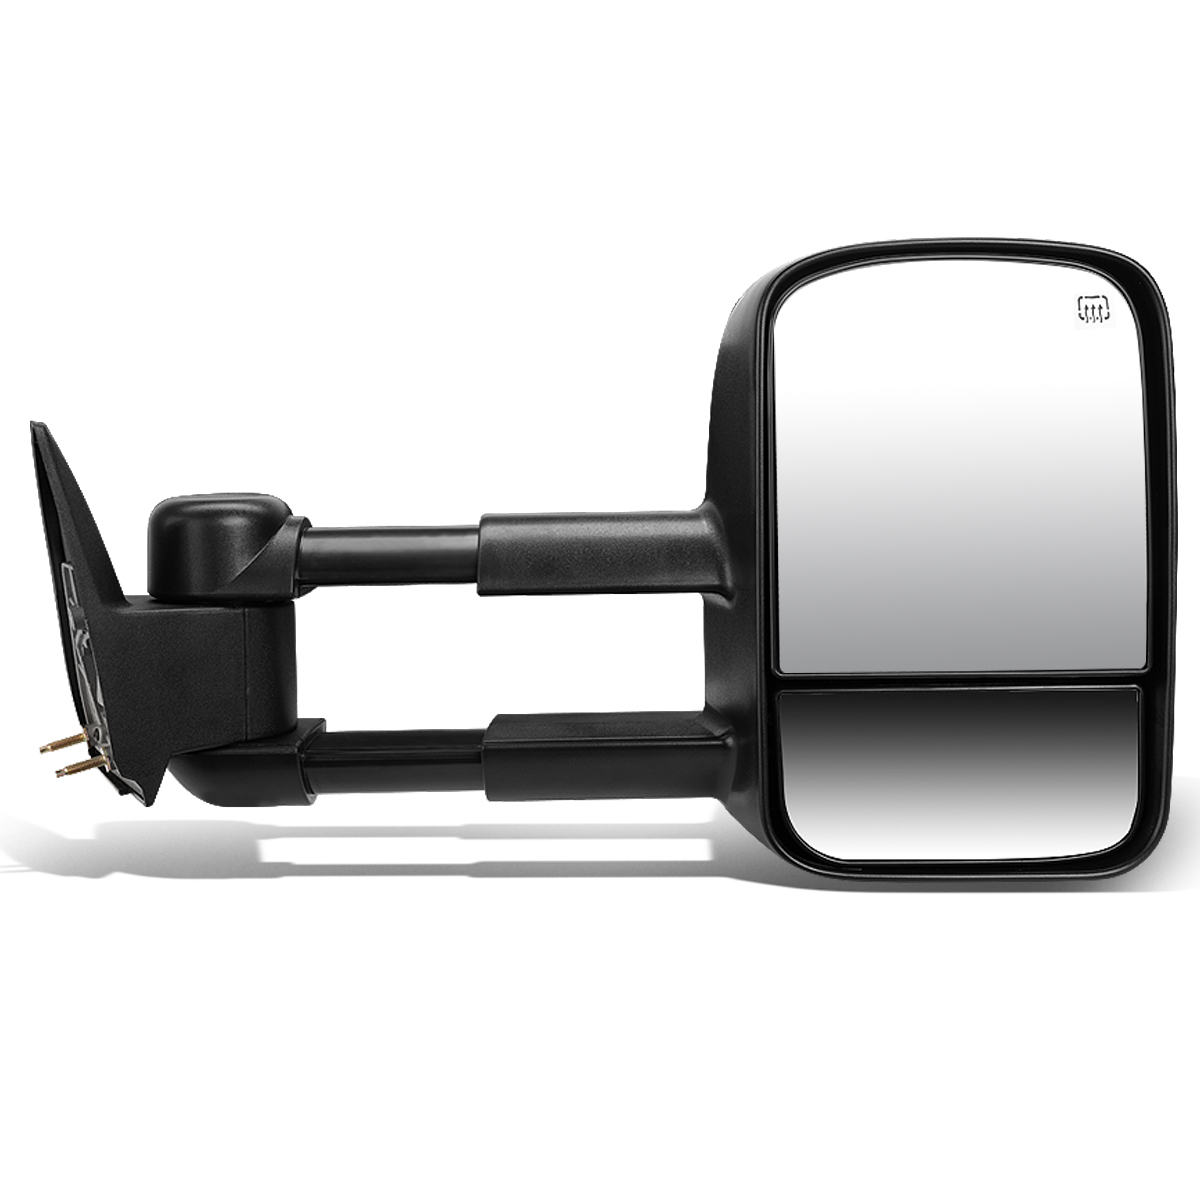 For 2003-2007 Chevy Silverado/GMC Sierra Powered Adjustment+Heated Tow Towing Mirror (Right/Passenger)